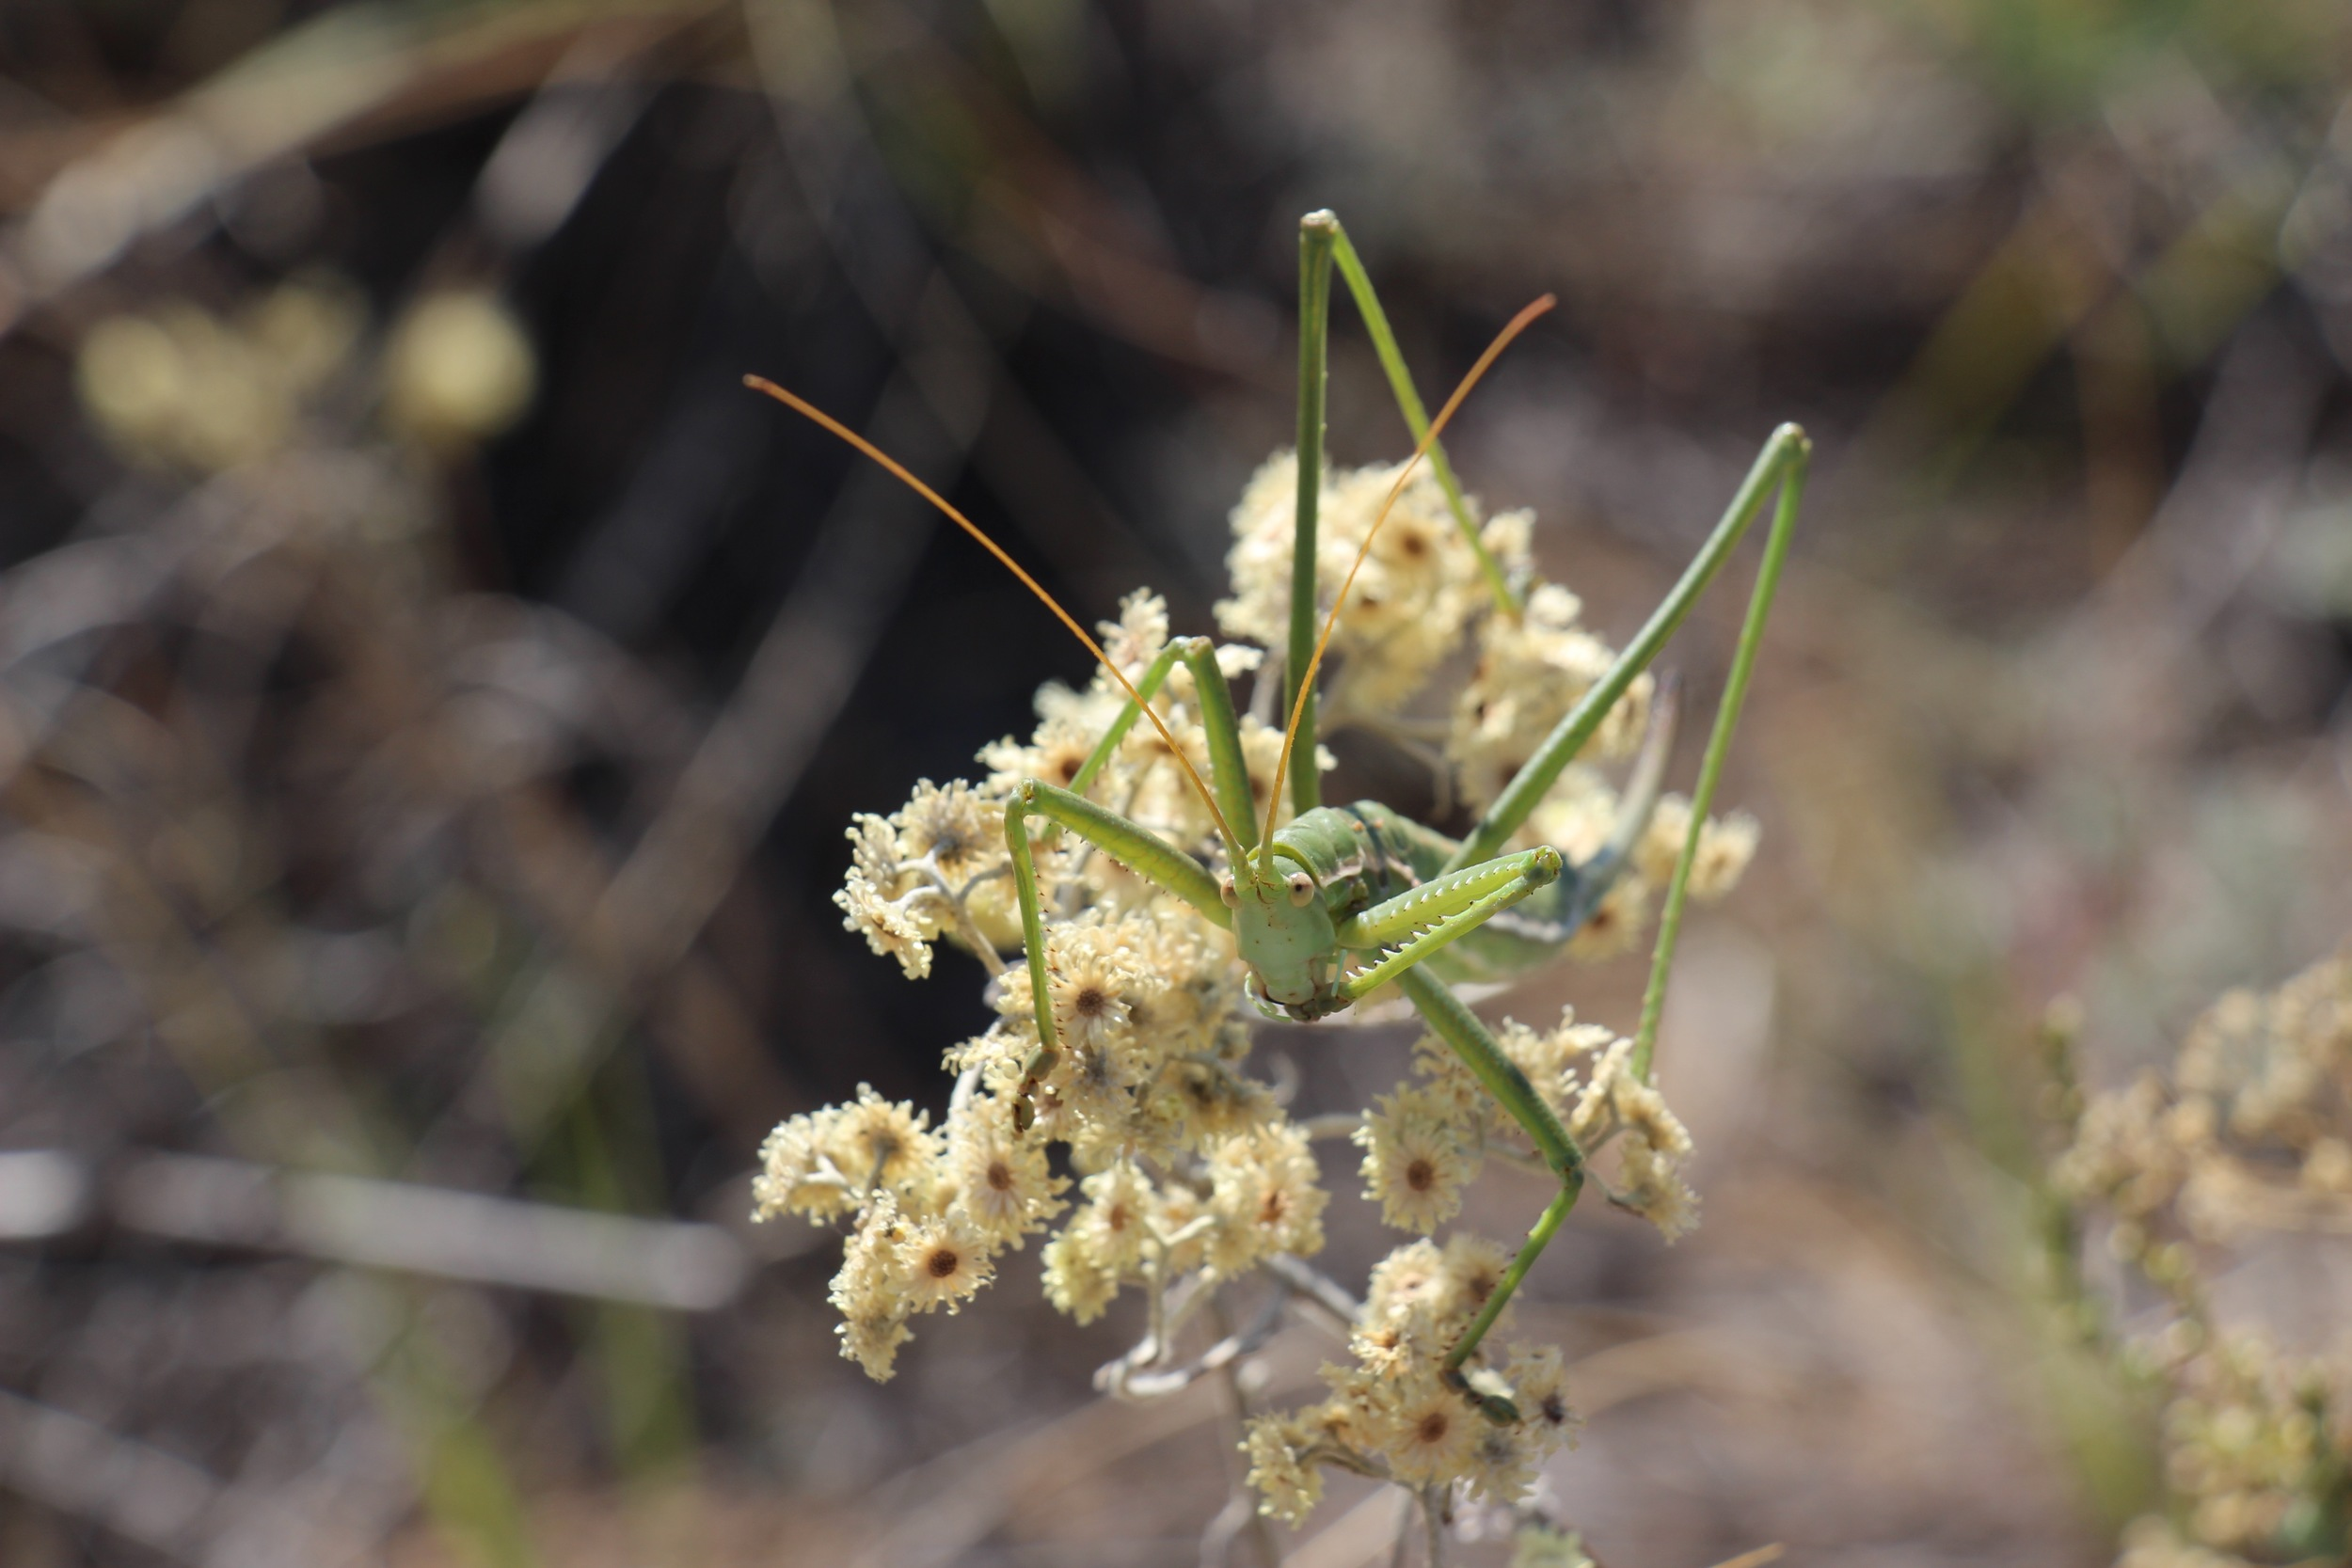 Threatened grassland Preying Mantis